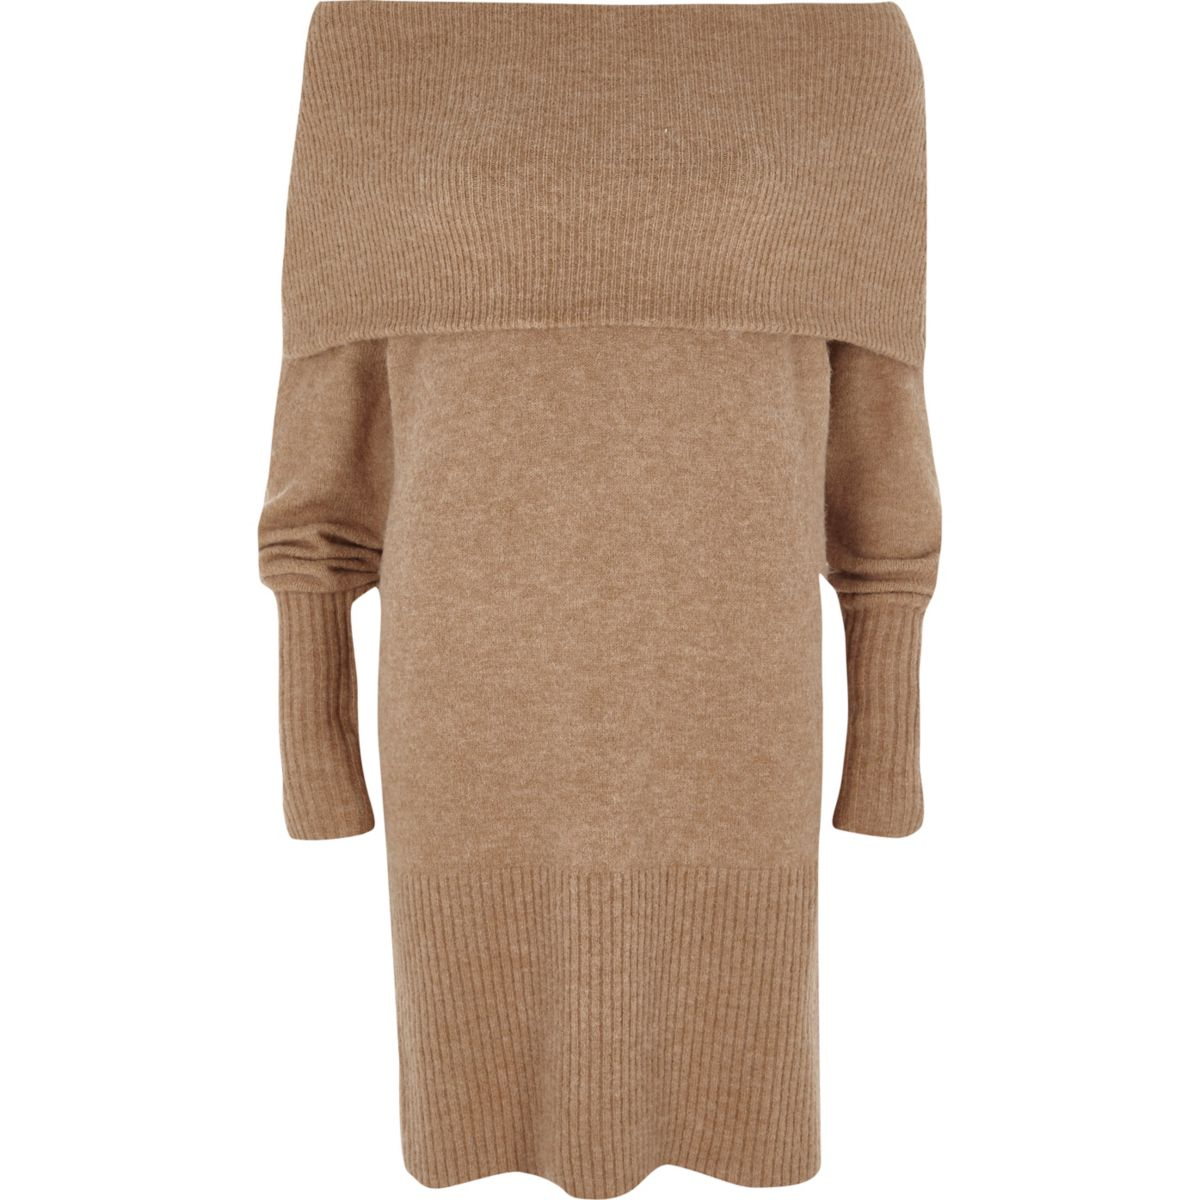 Beige foldover bardot jumper dress